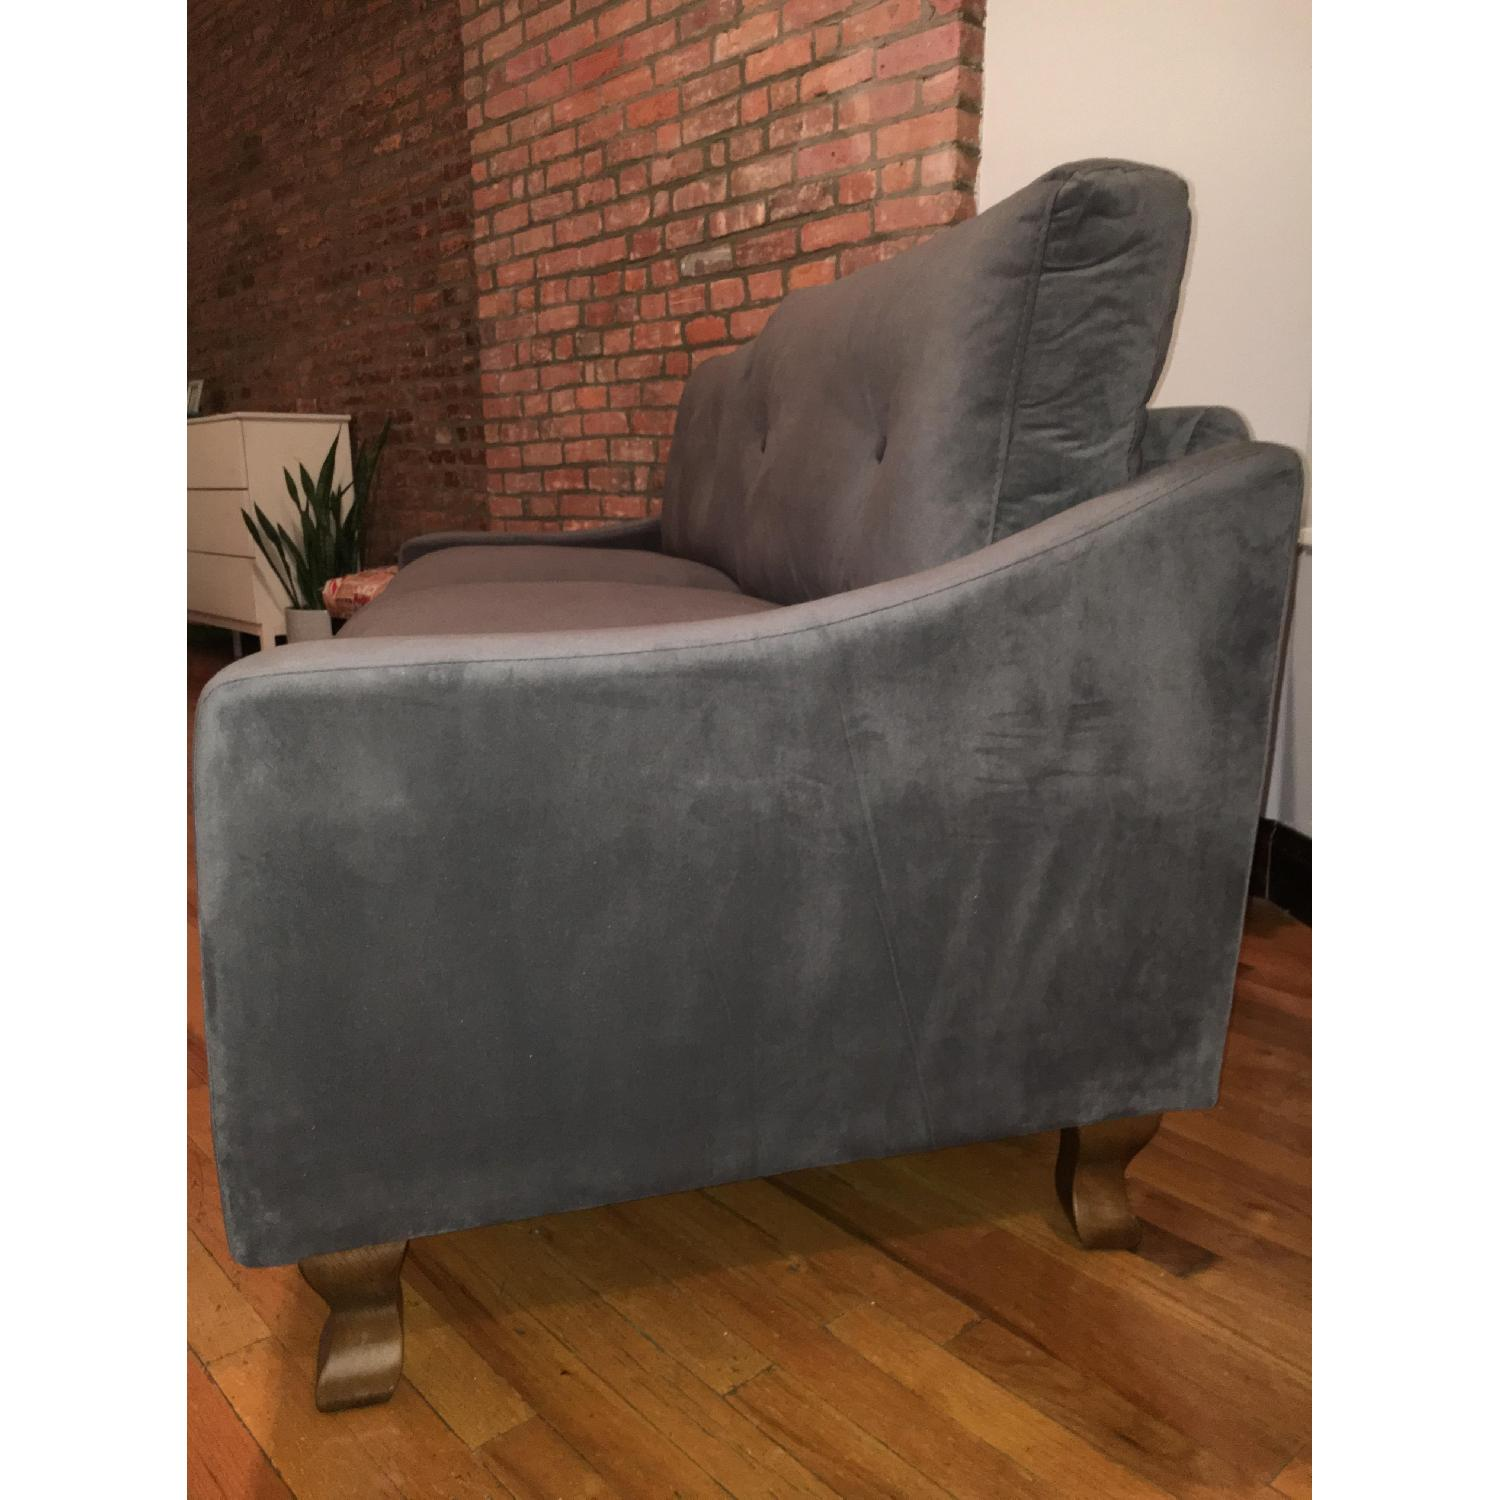 Urban Outfitters Annette Sofa - image-2